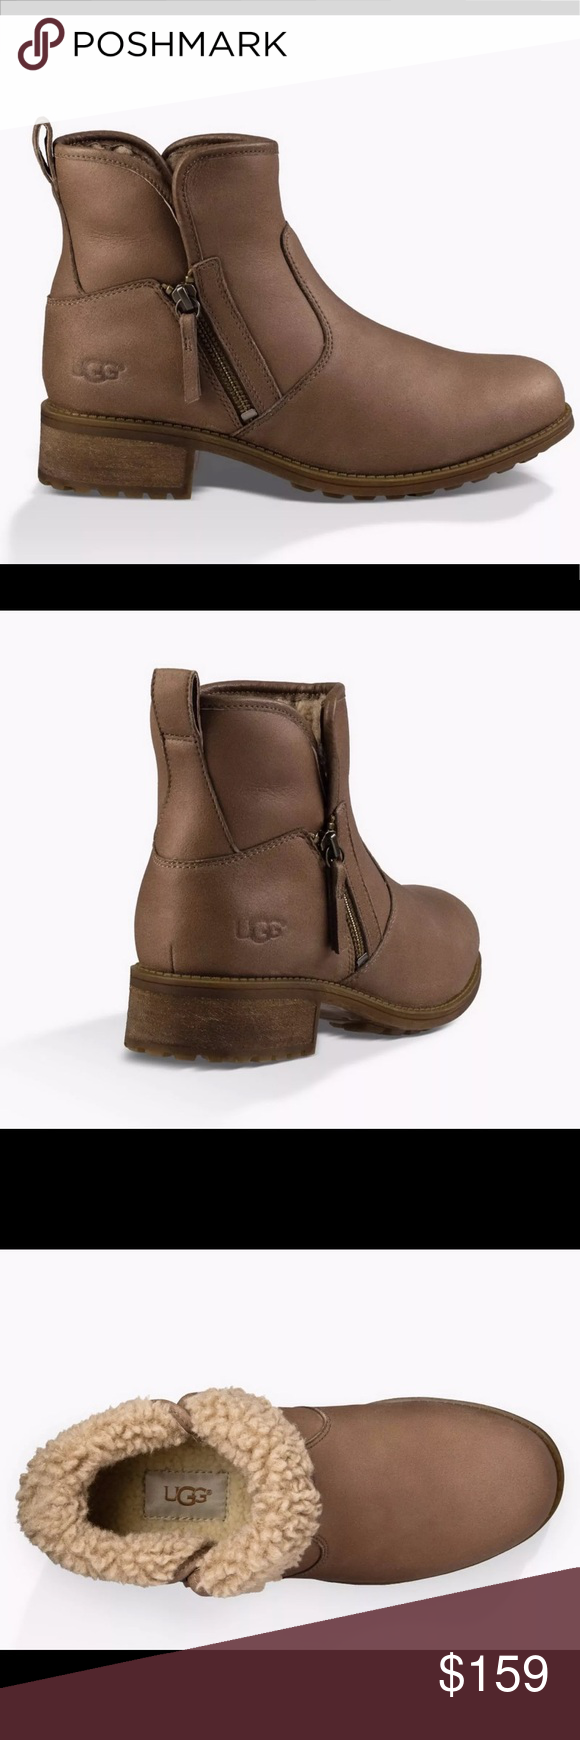 593ae0b94c7 UGG Australia Womens Lavelle Boot Size 9 we all love in the LaVelle ...